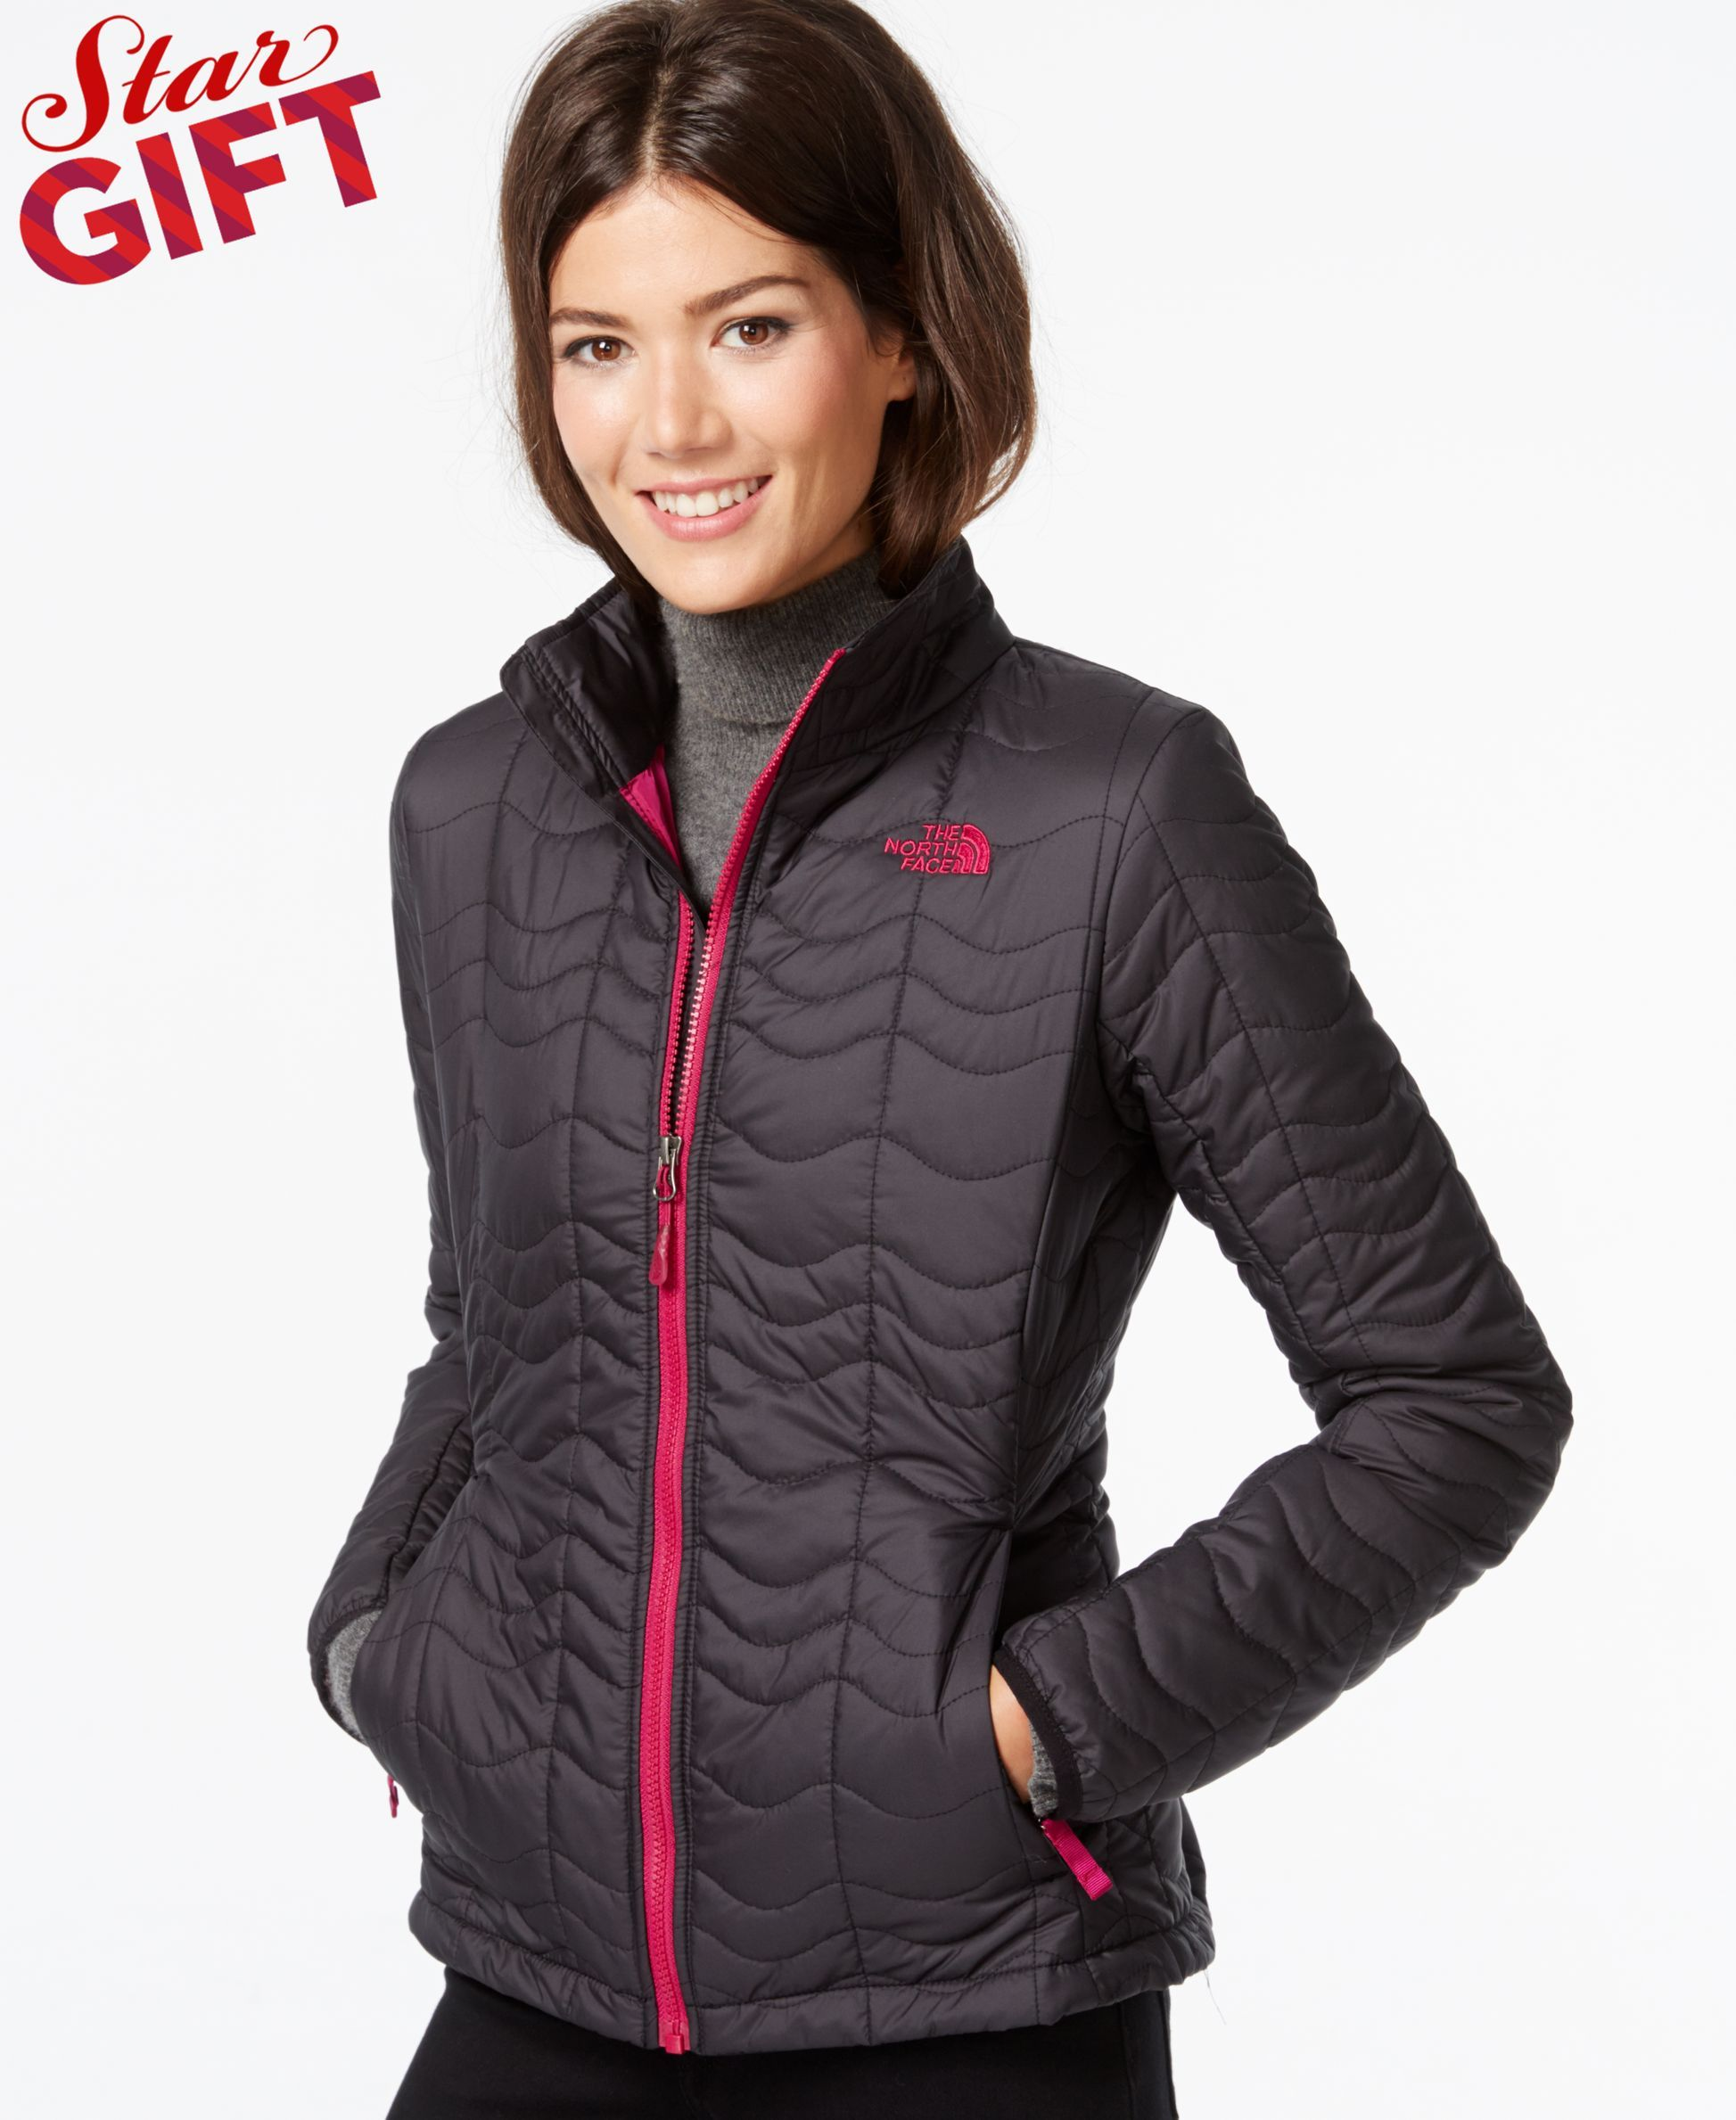 da1afa712 The North Face Insulated Bombay Jacket - The North Face - Women ...